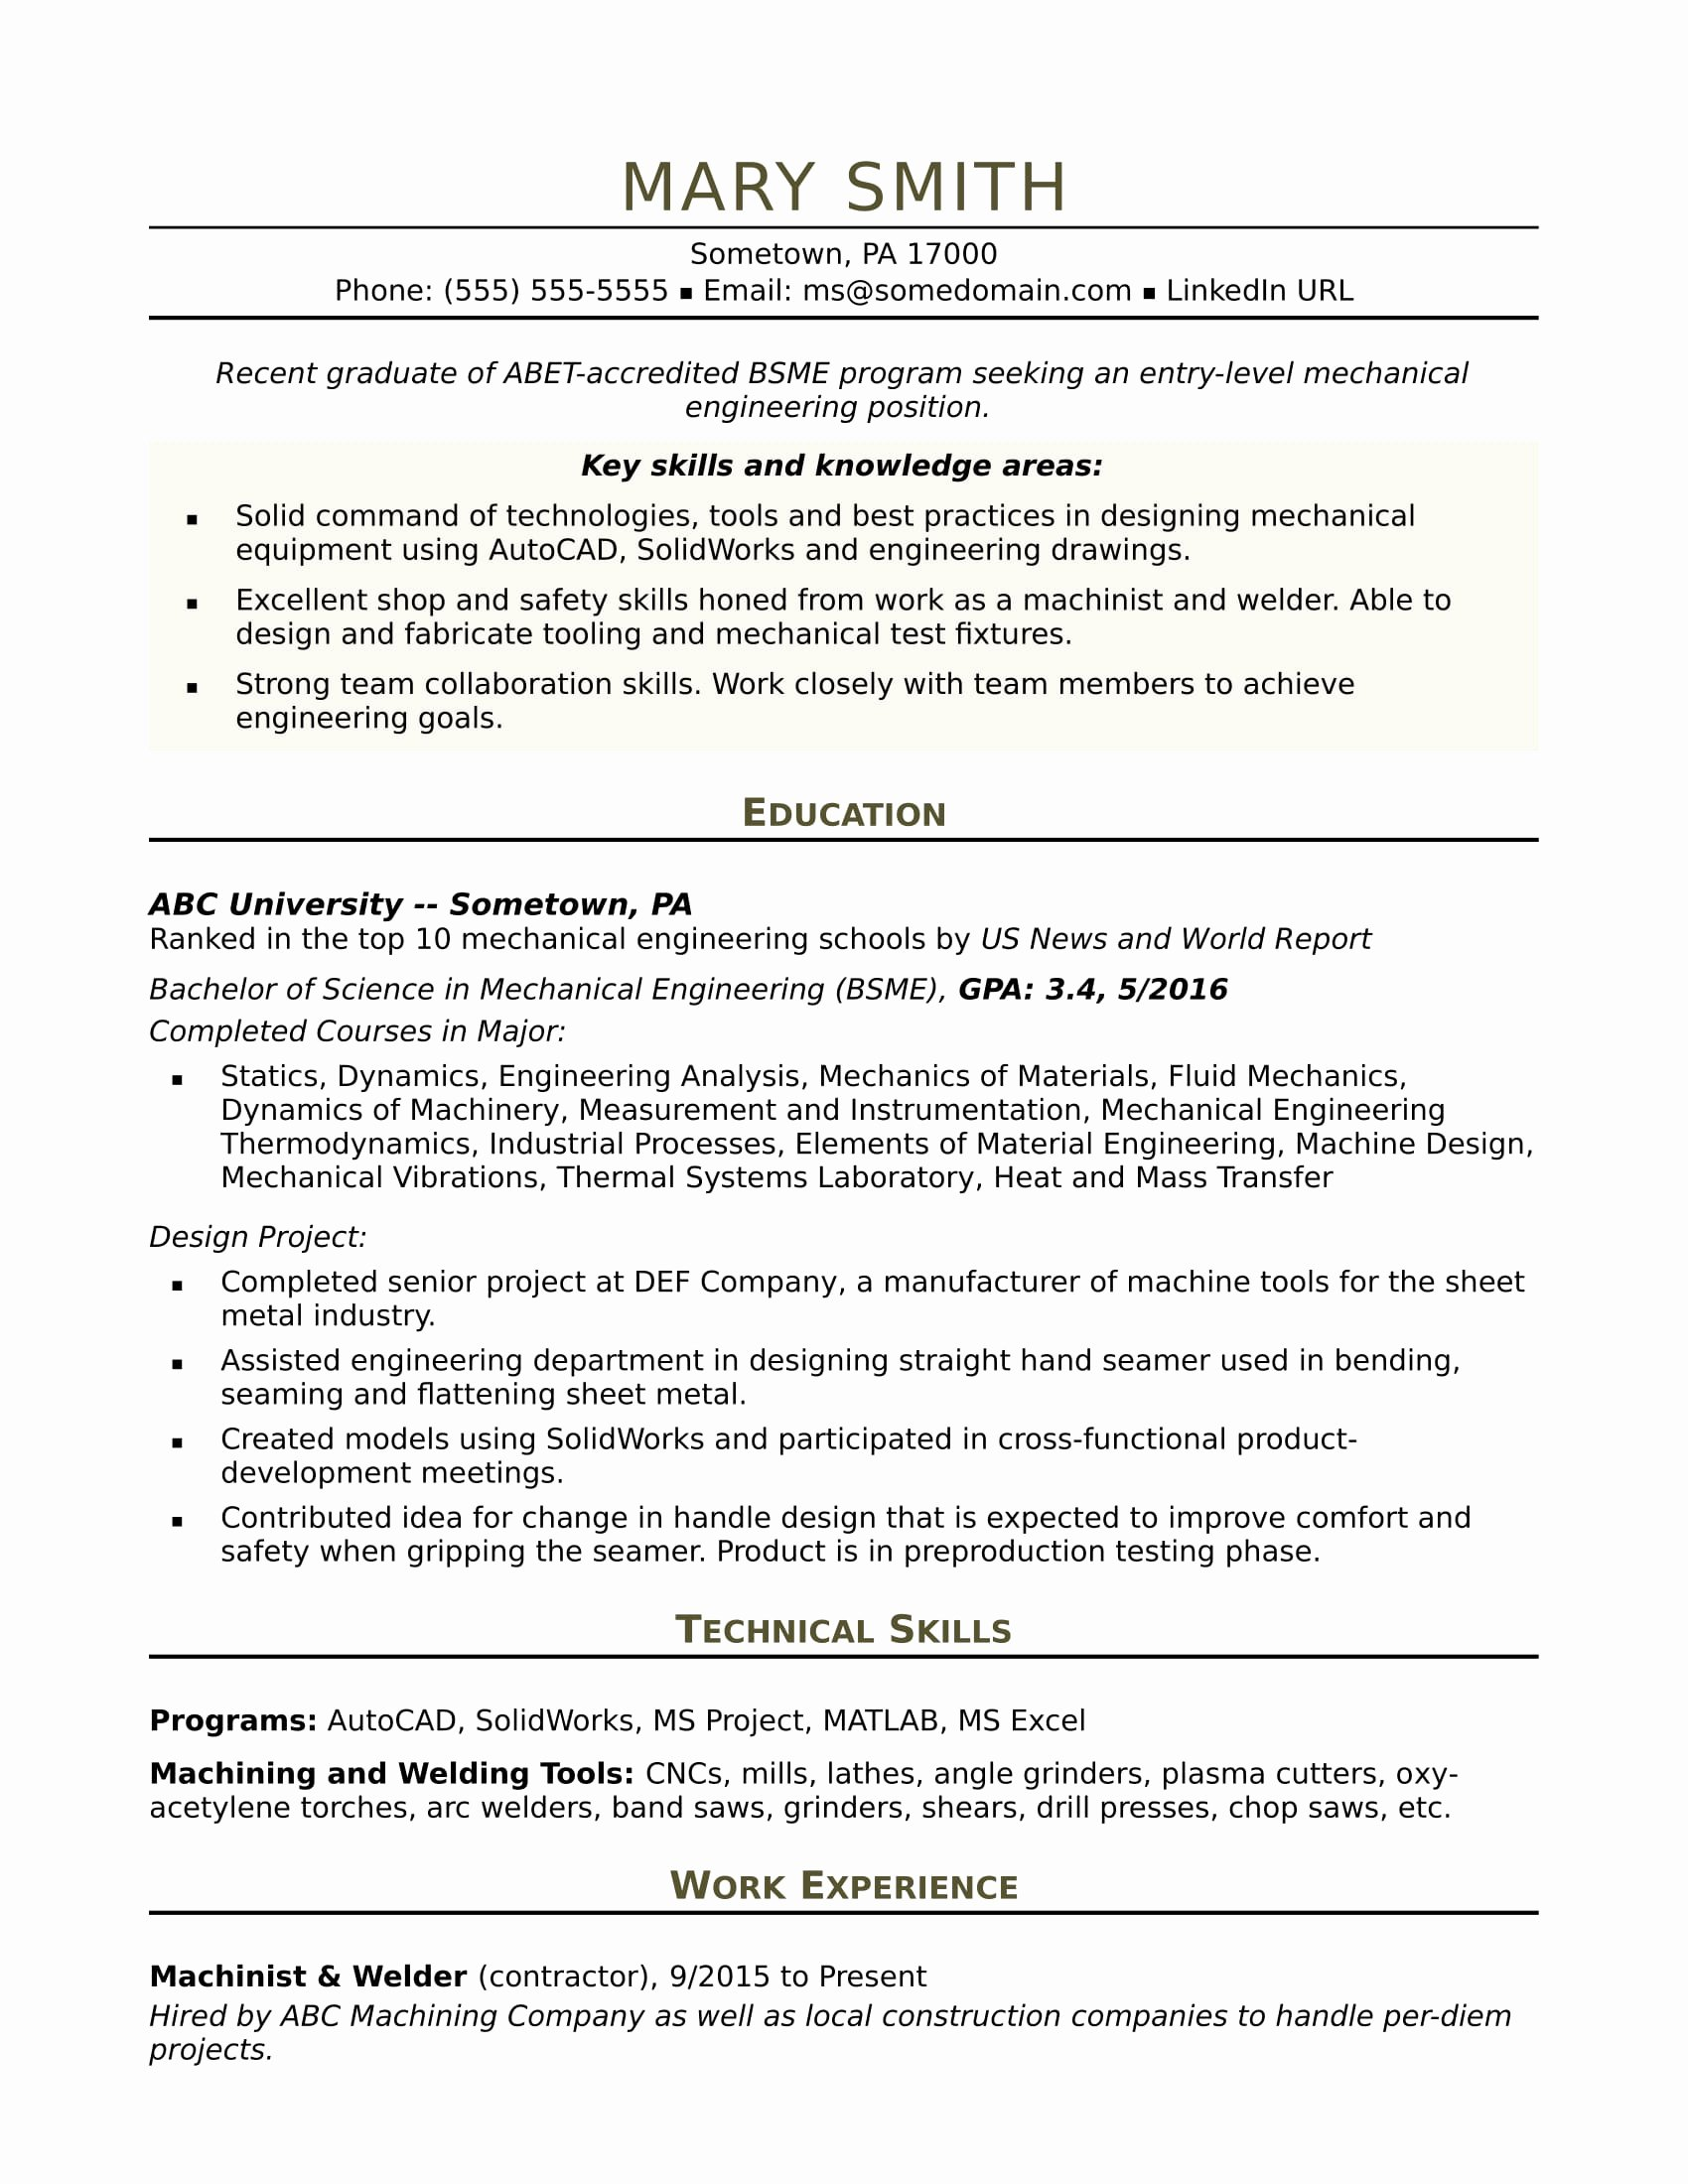 Mechanical Engineering Resume Examples Inspirational Sample Resume for An Entry Level Mechanical Engineer